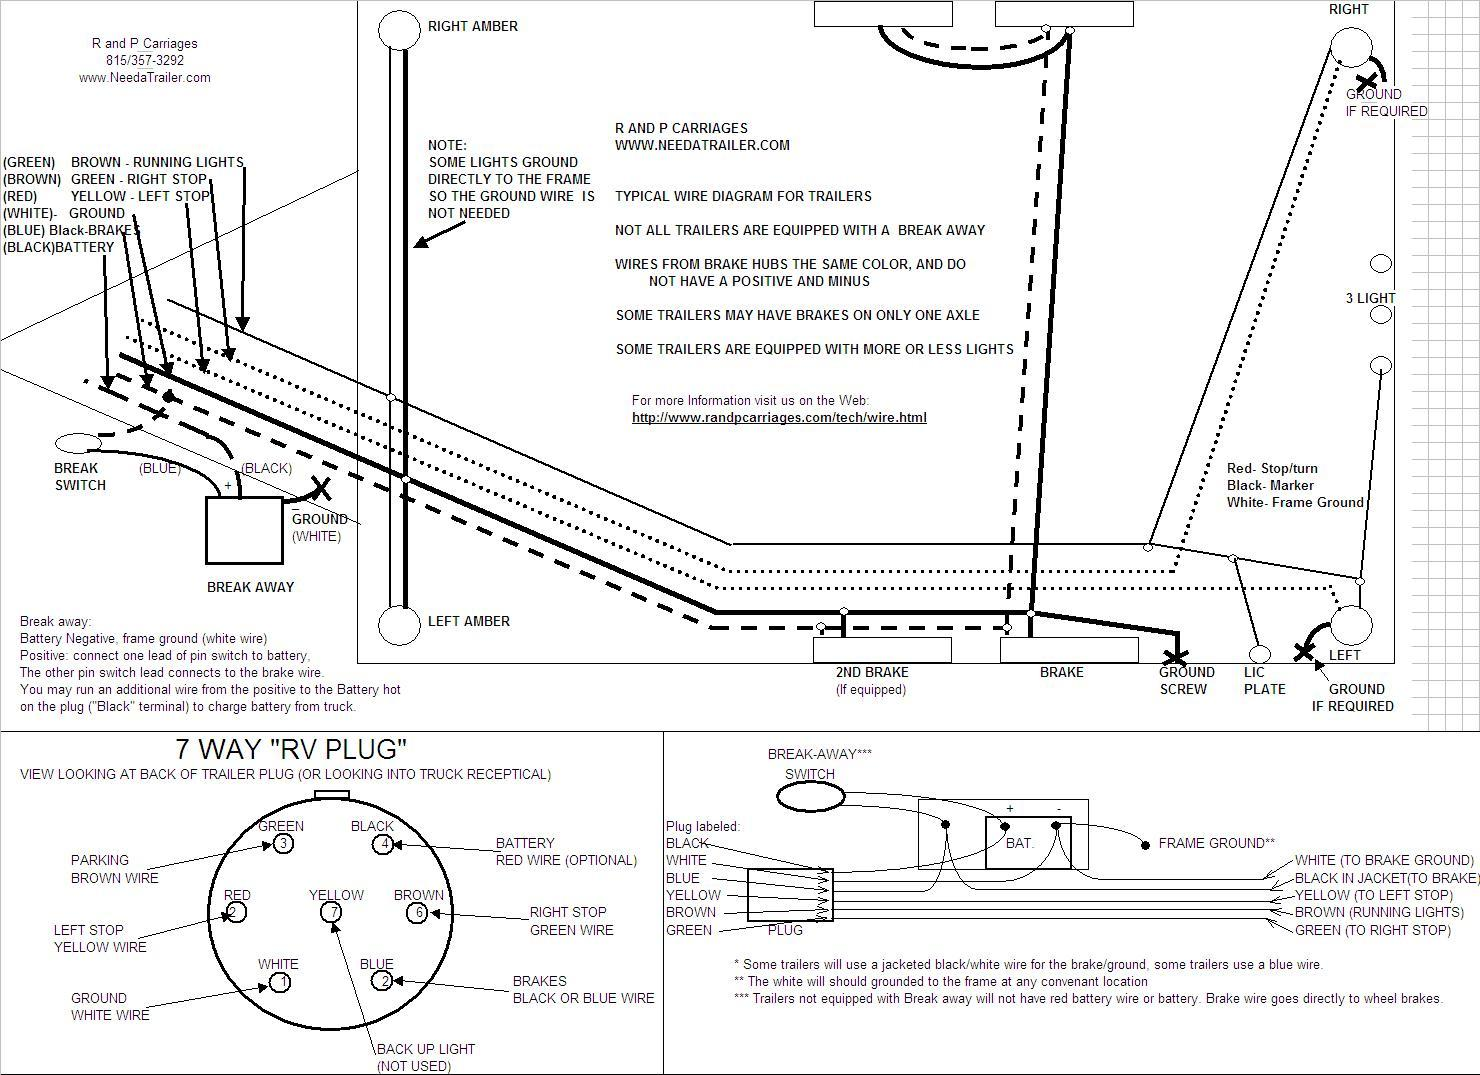 7 way wiring diagram brake controller installation instructions 3 Prong Plug Wiring Diagram at mifinder.co